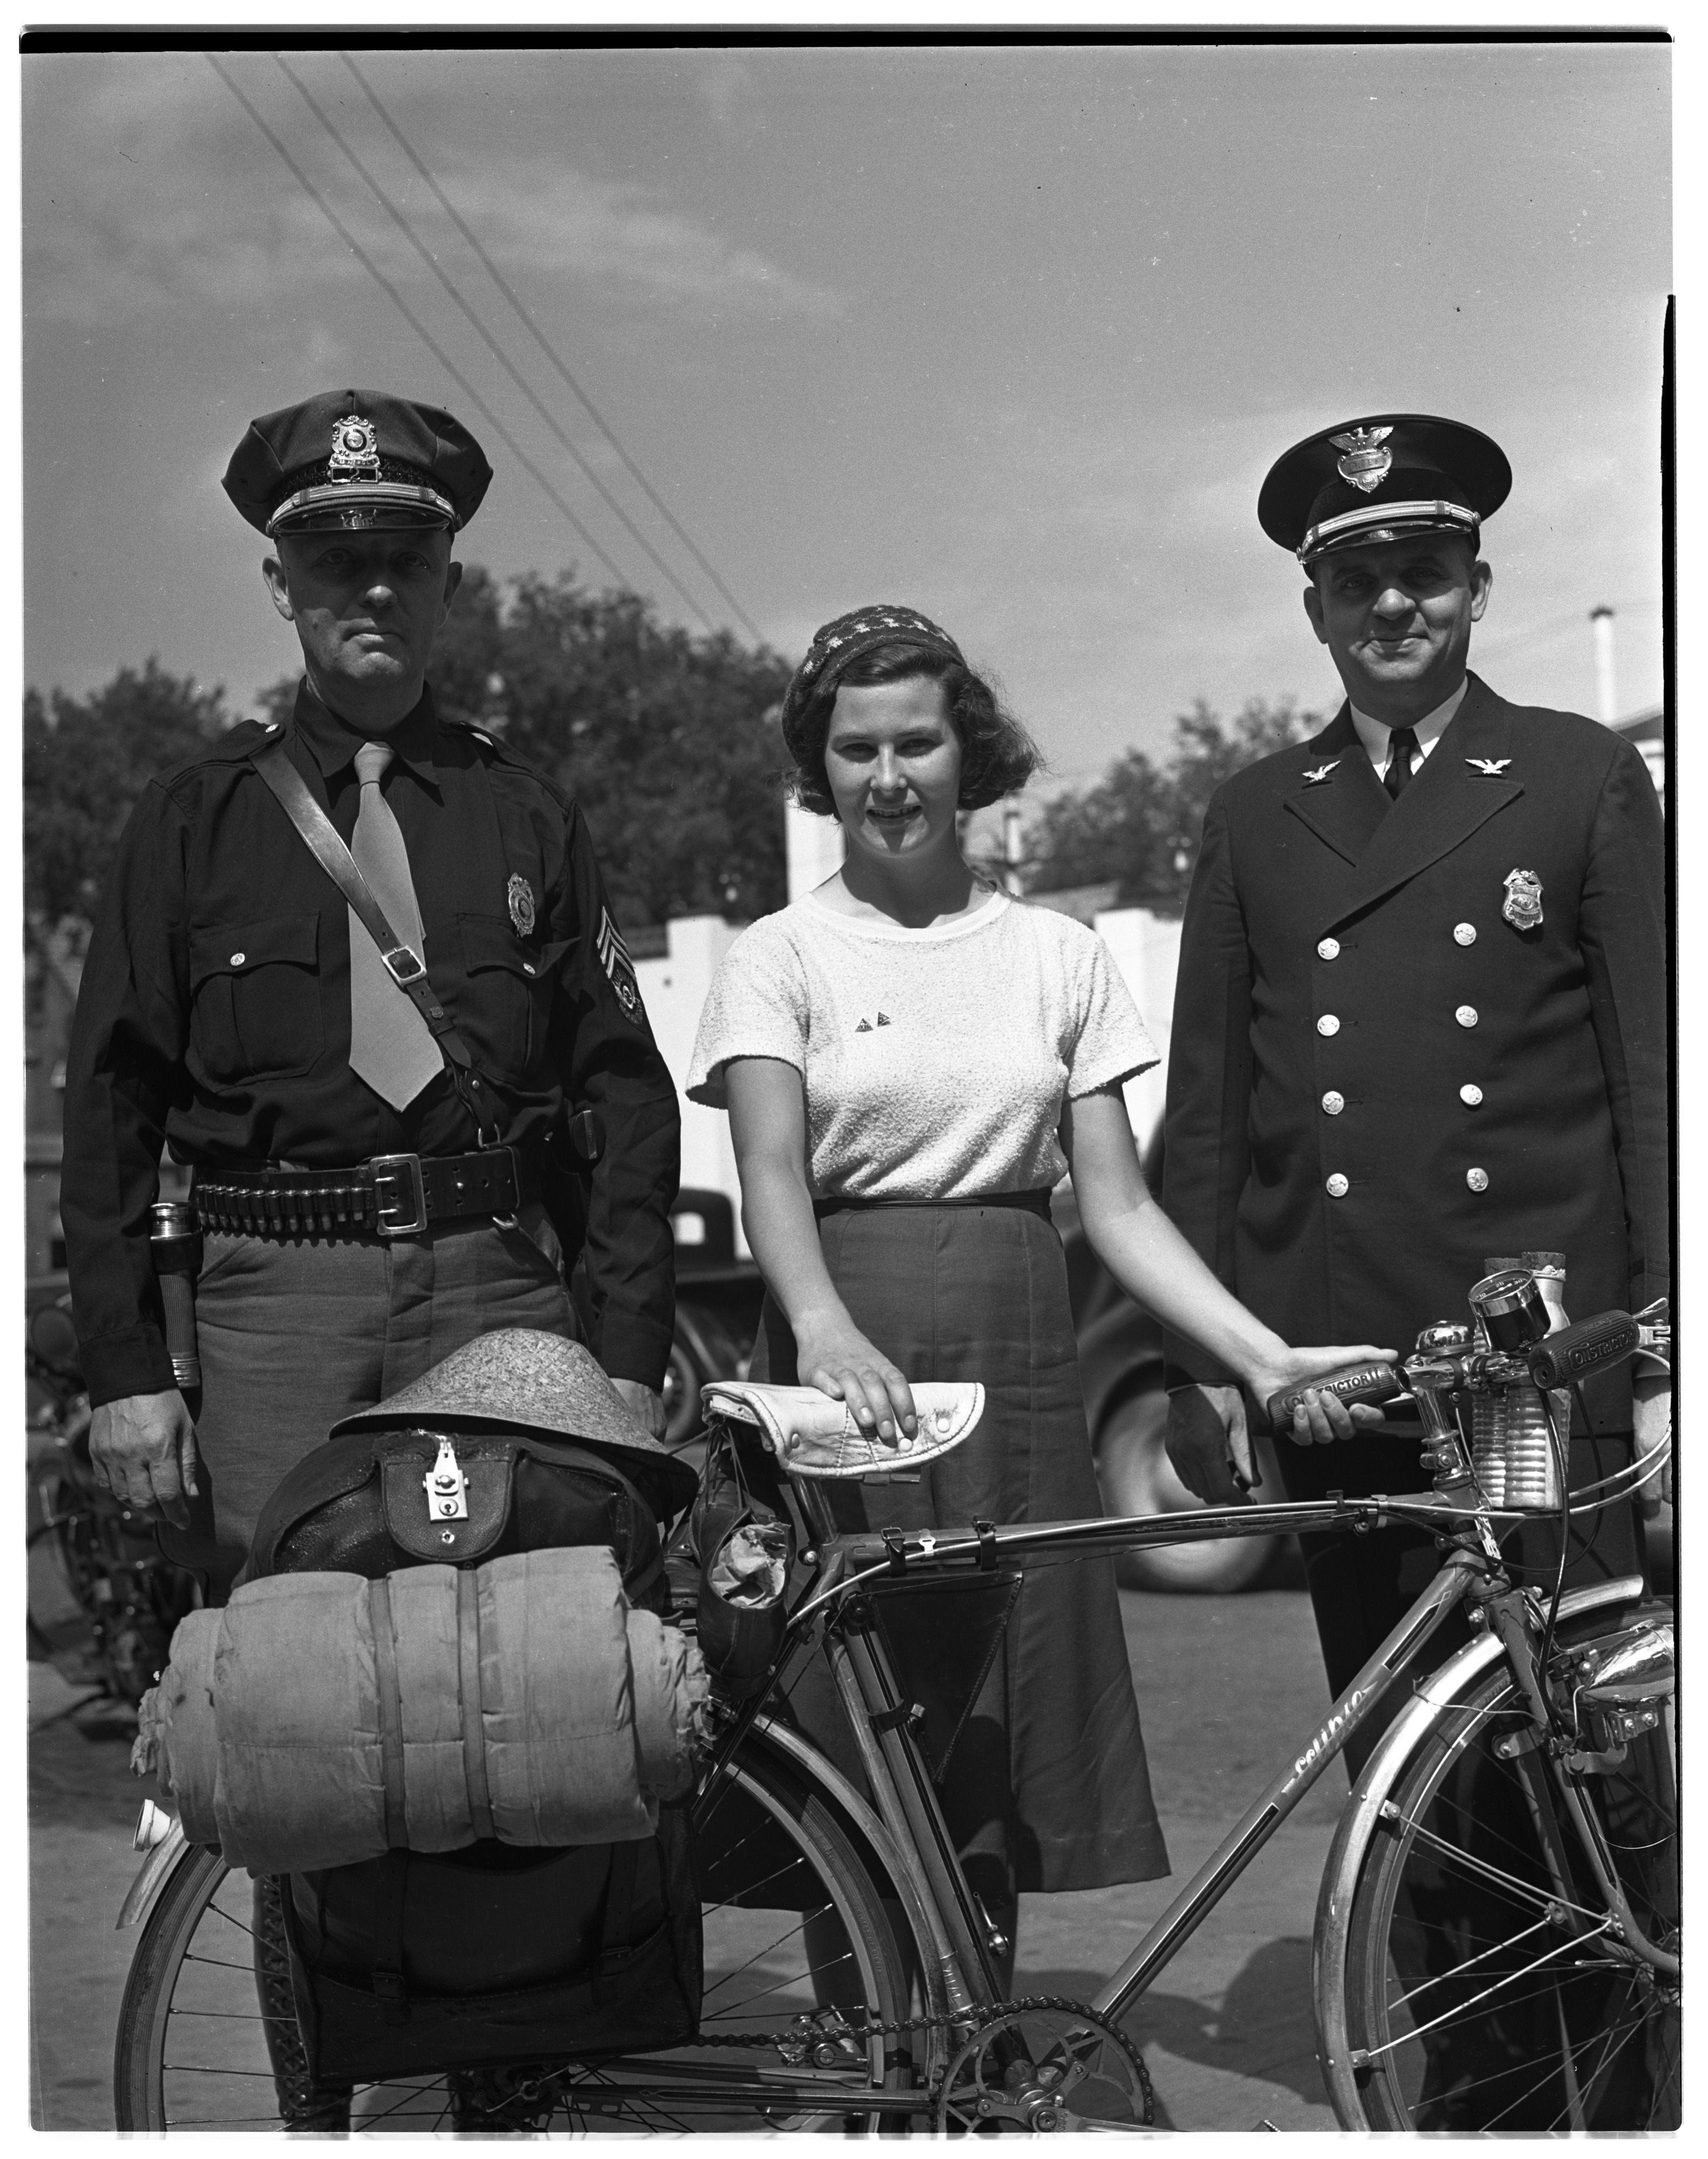 Peggy Allin: English Cyclist with Chief N Cooke & Alabama Trooper image